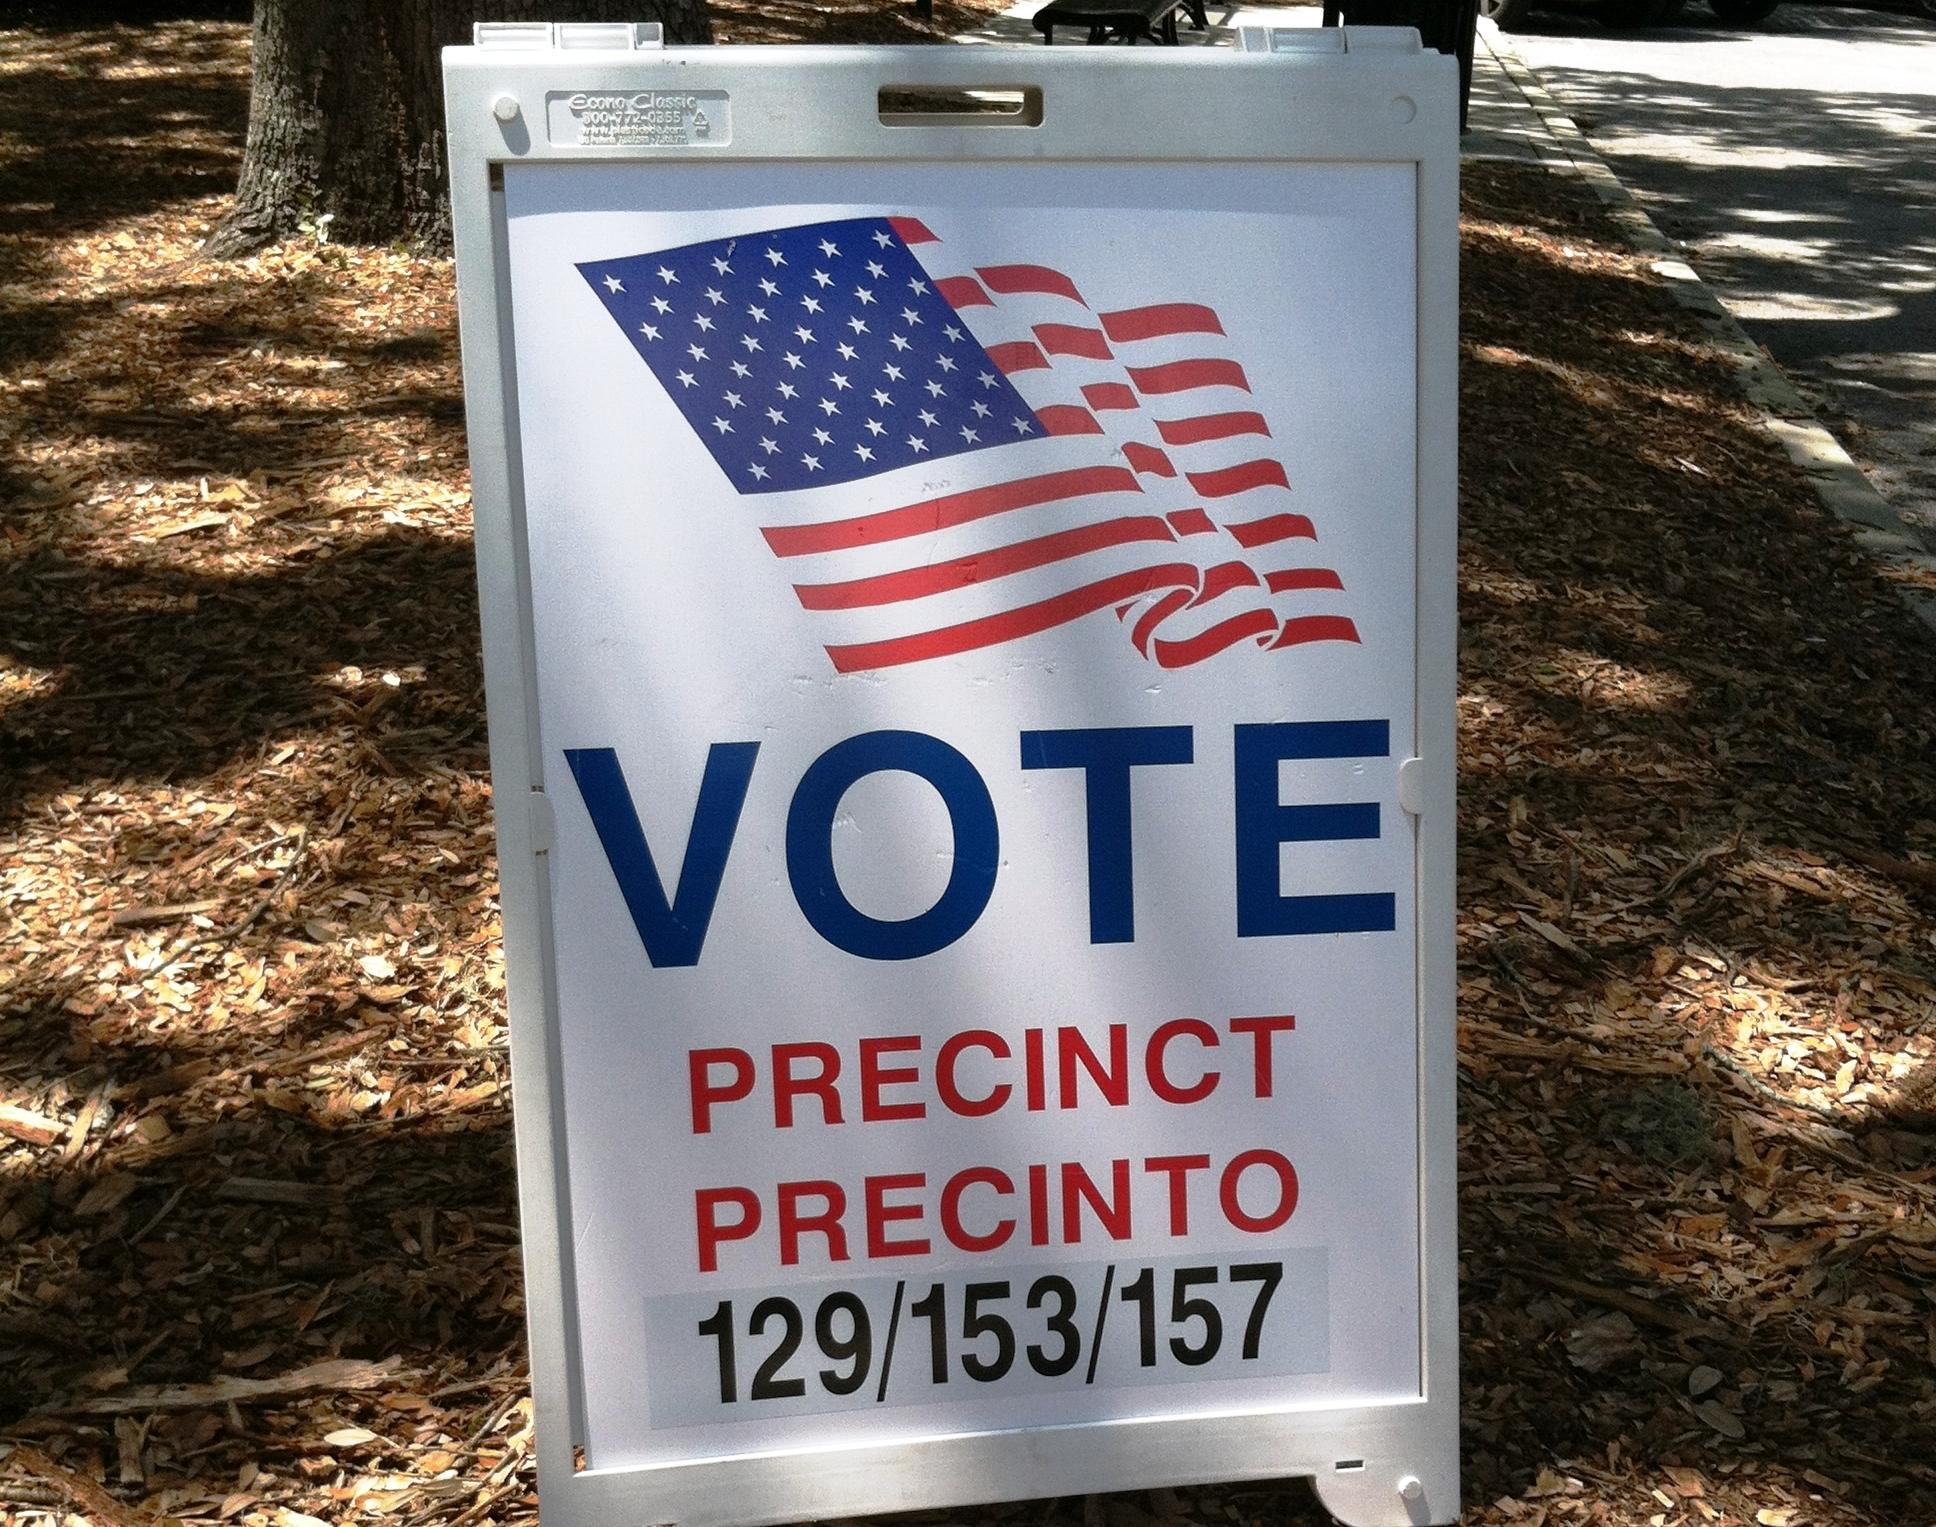 Judge Asked To Require Spanish-Language Ballots